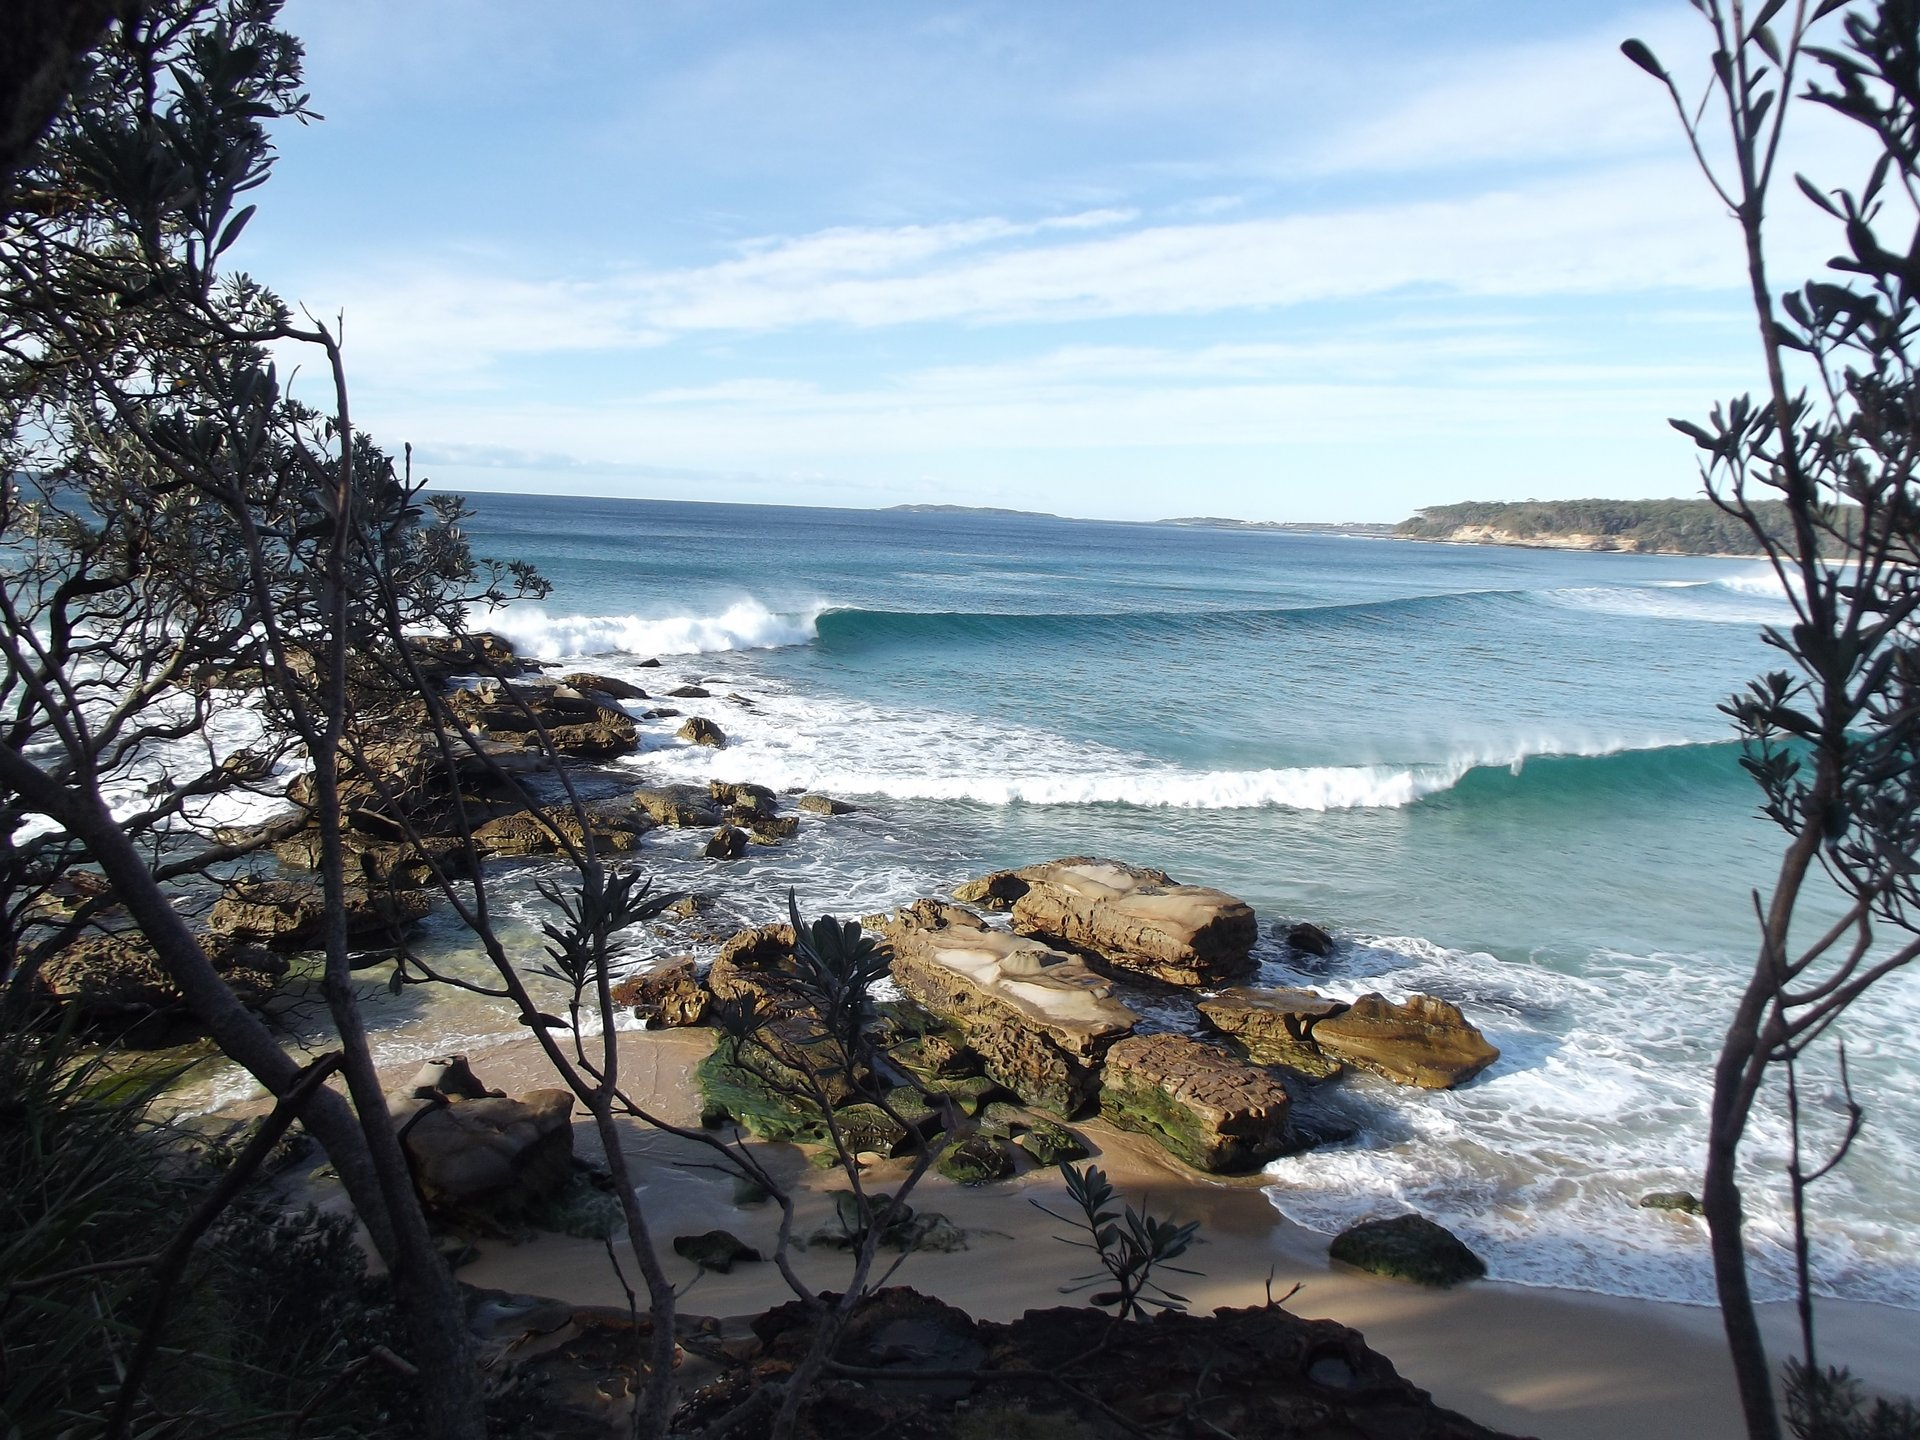 Garry Wall's photo of Mollymook Beach